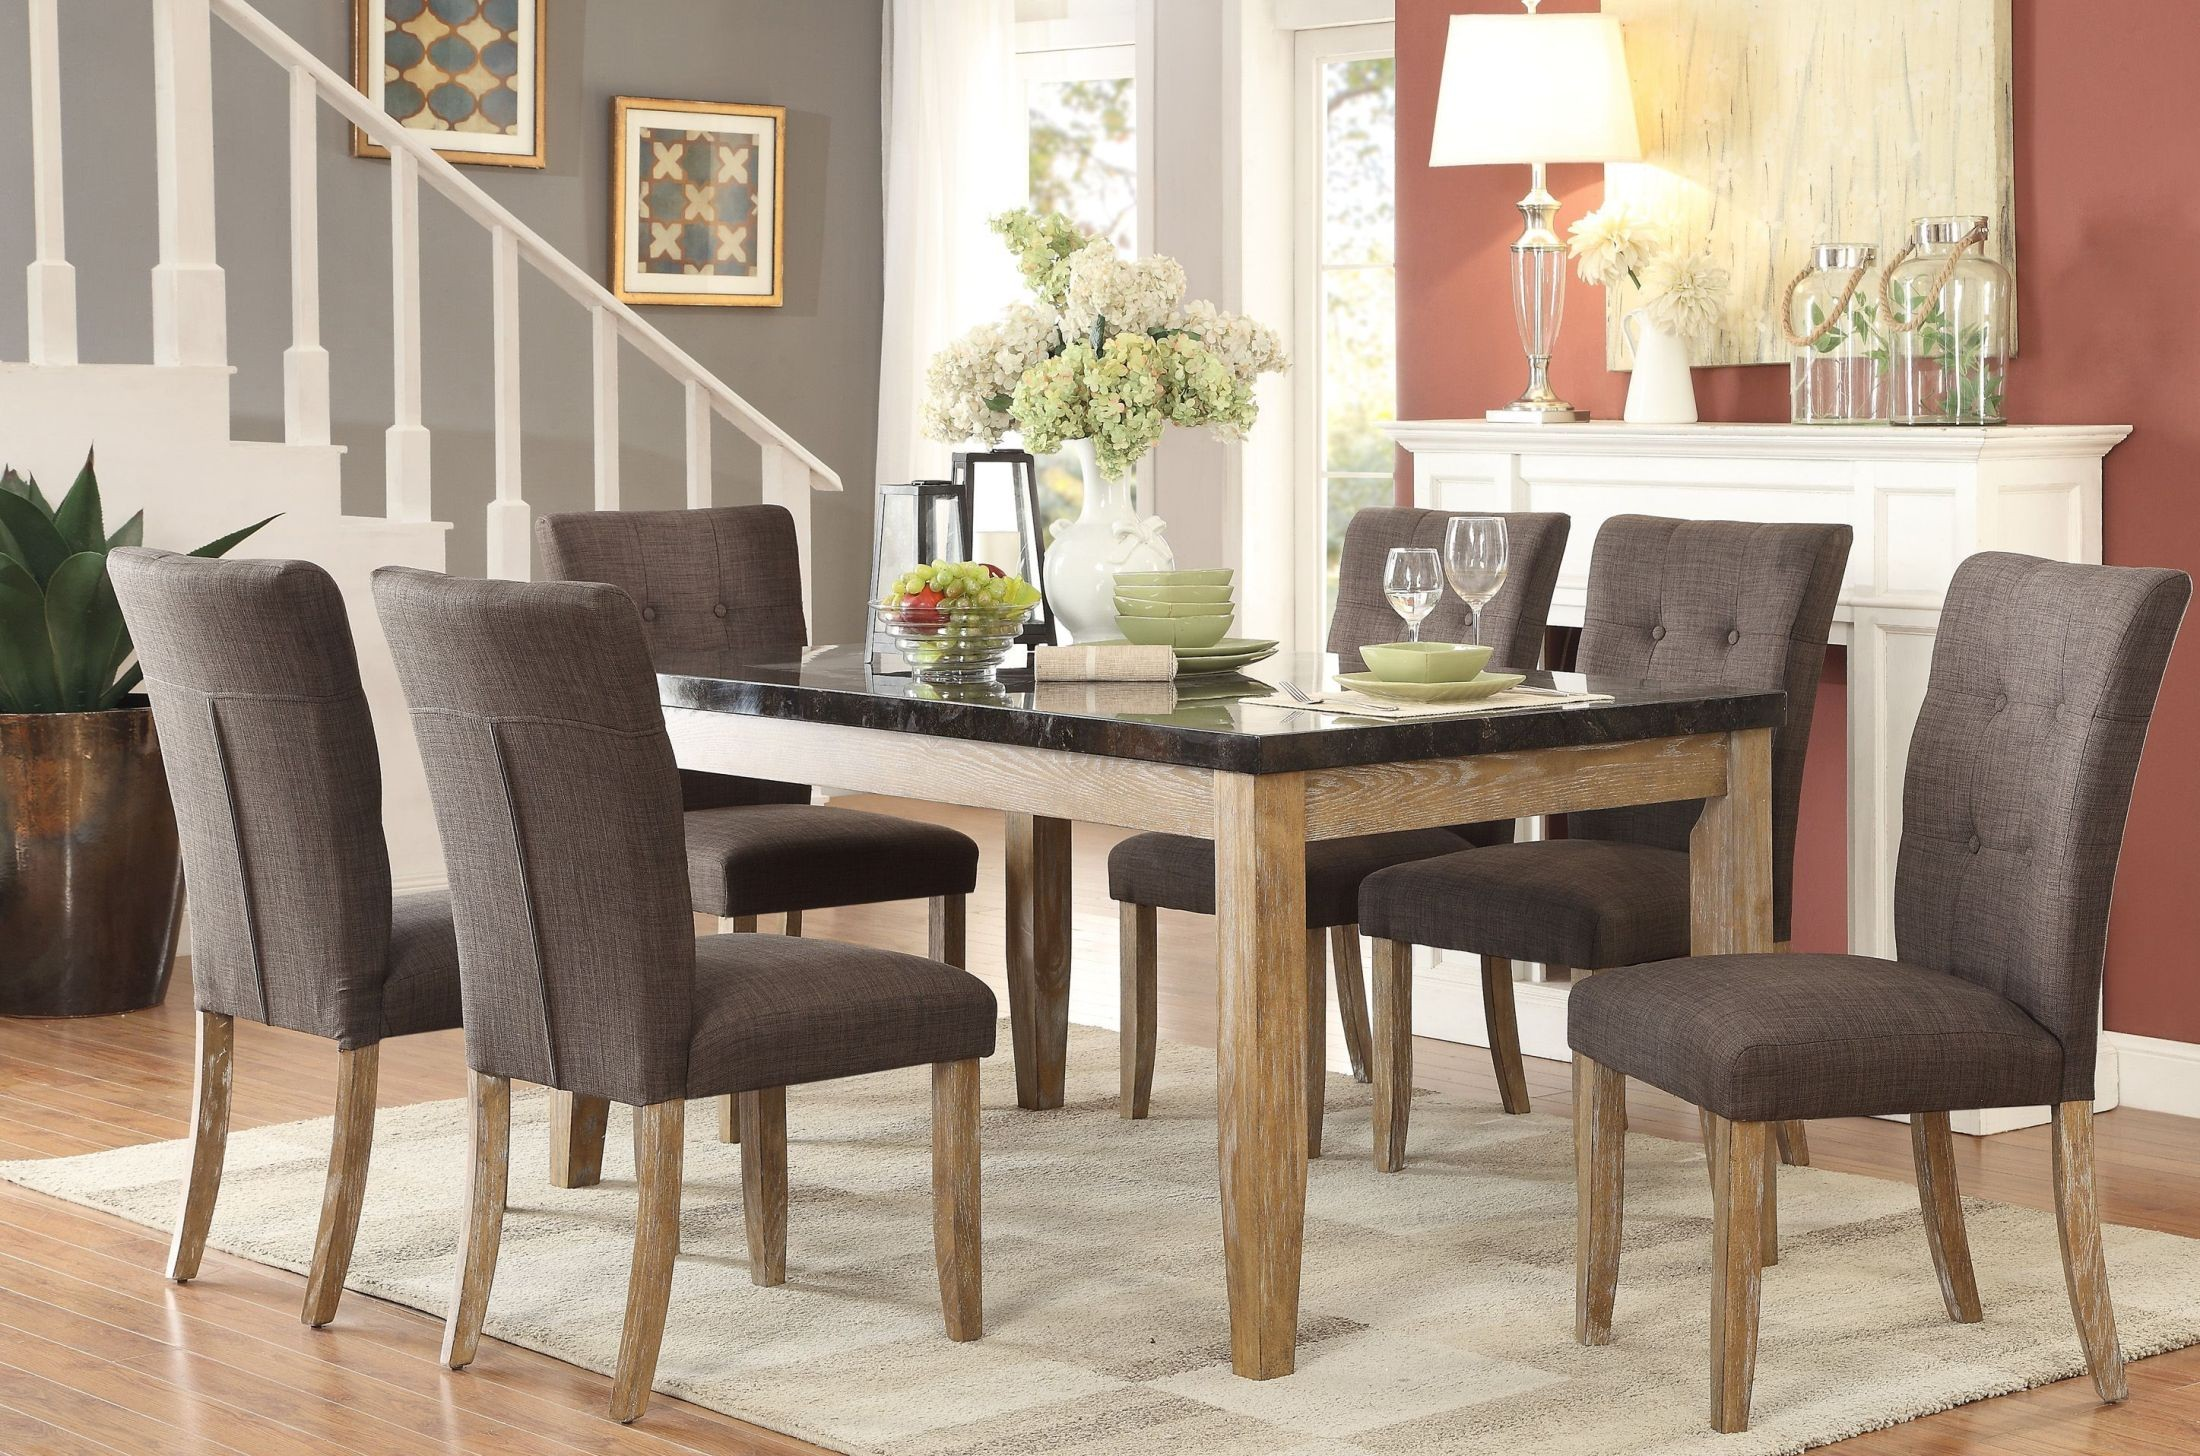 huron gray dining room set 5285 64 homelegance